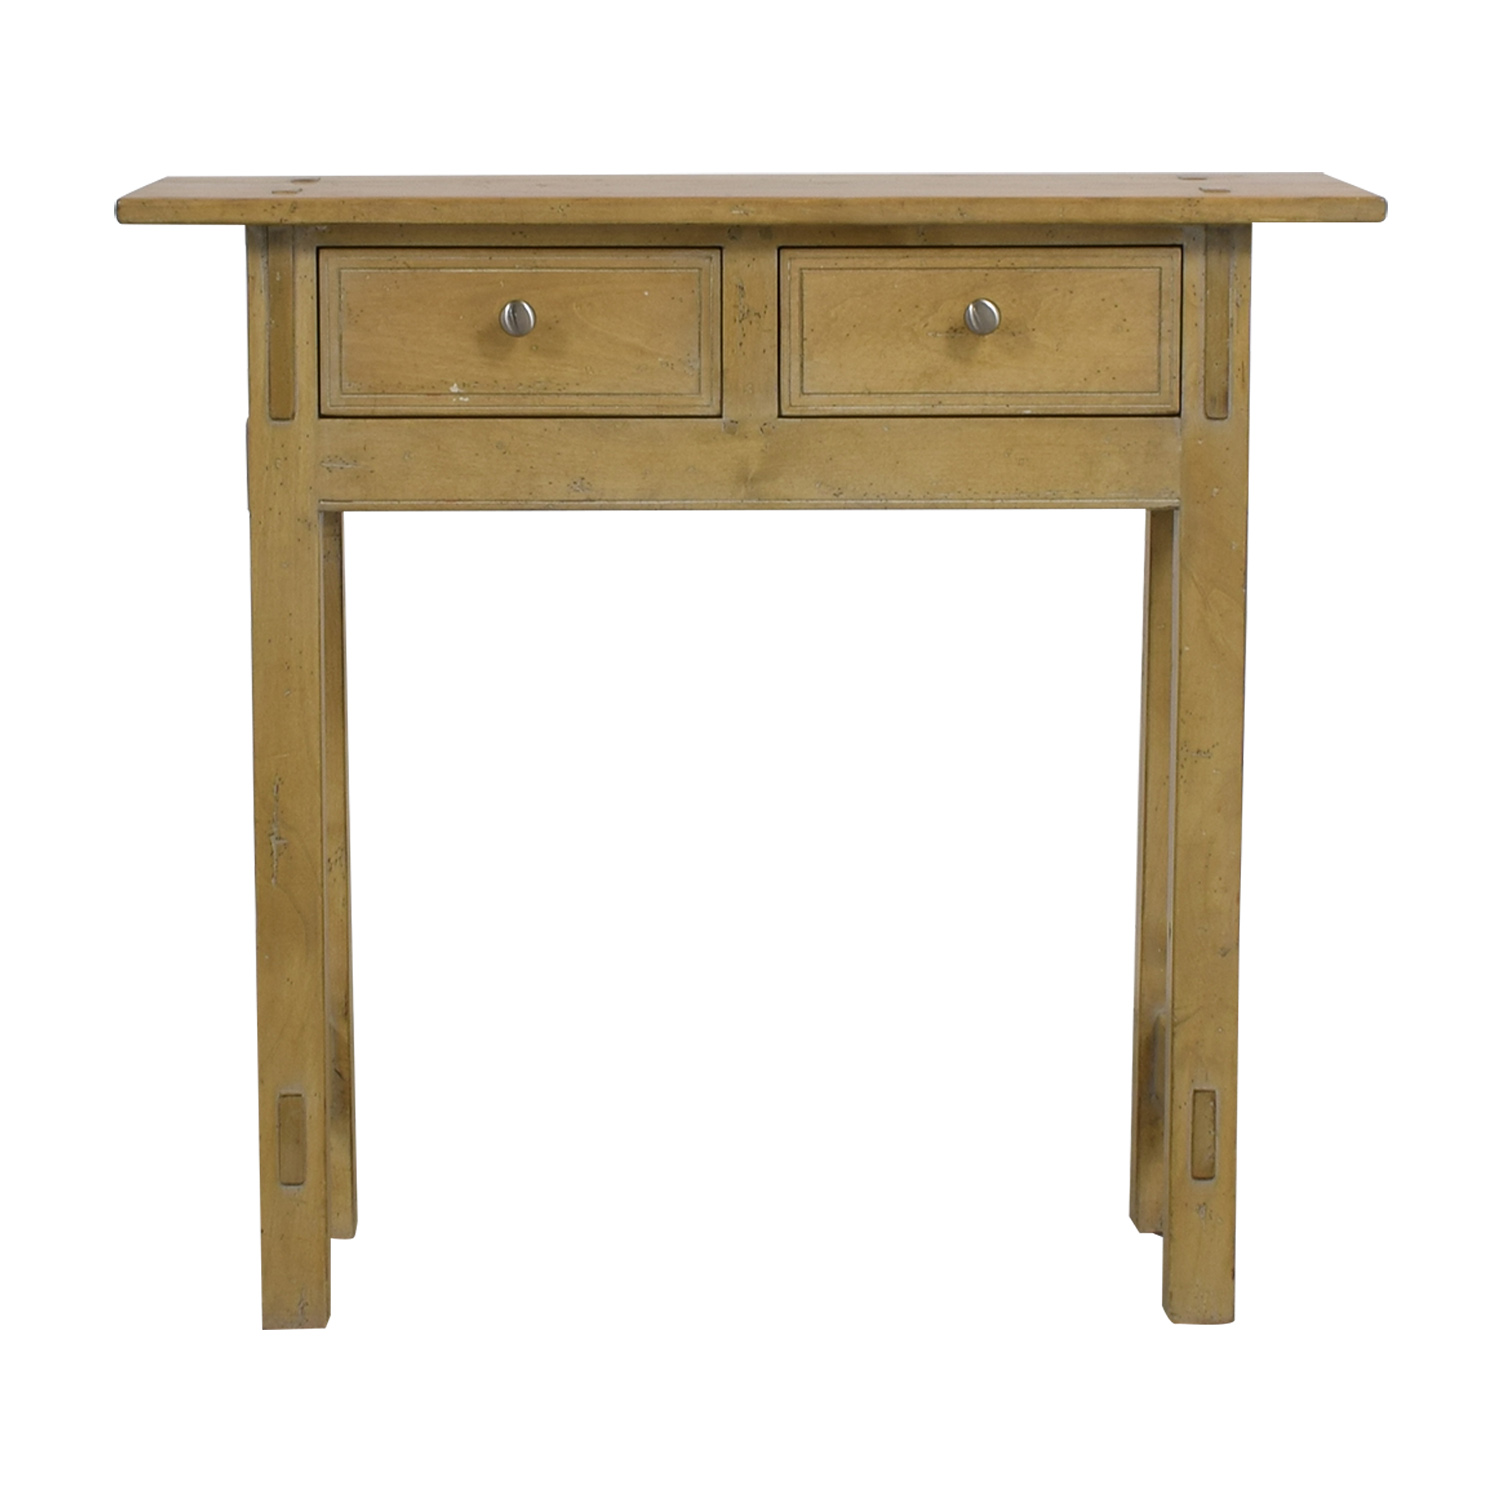 Guy Chaddock Co Natural Rustic Accent Table